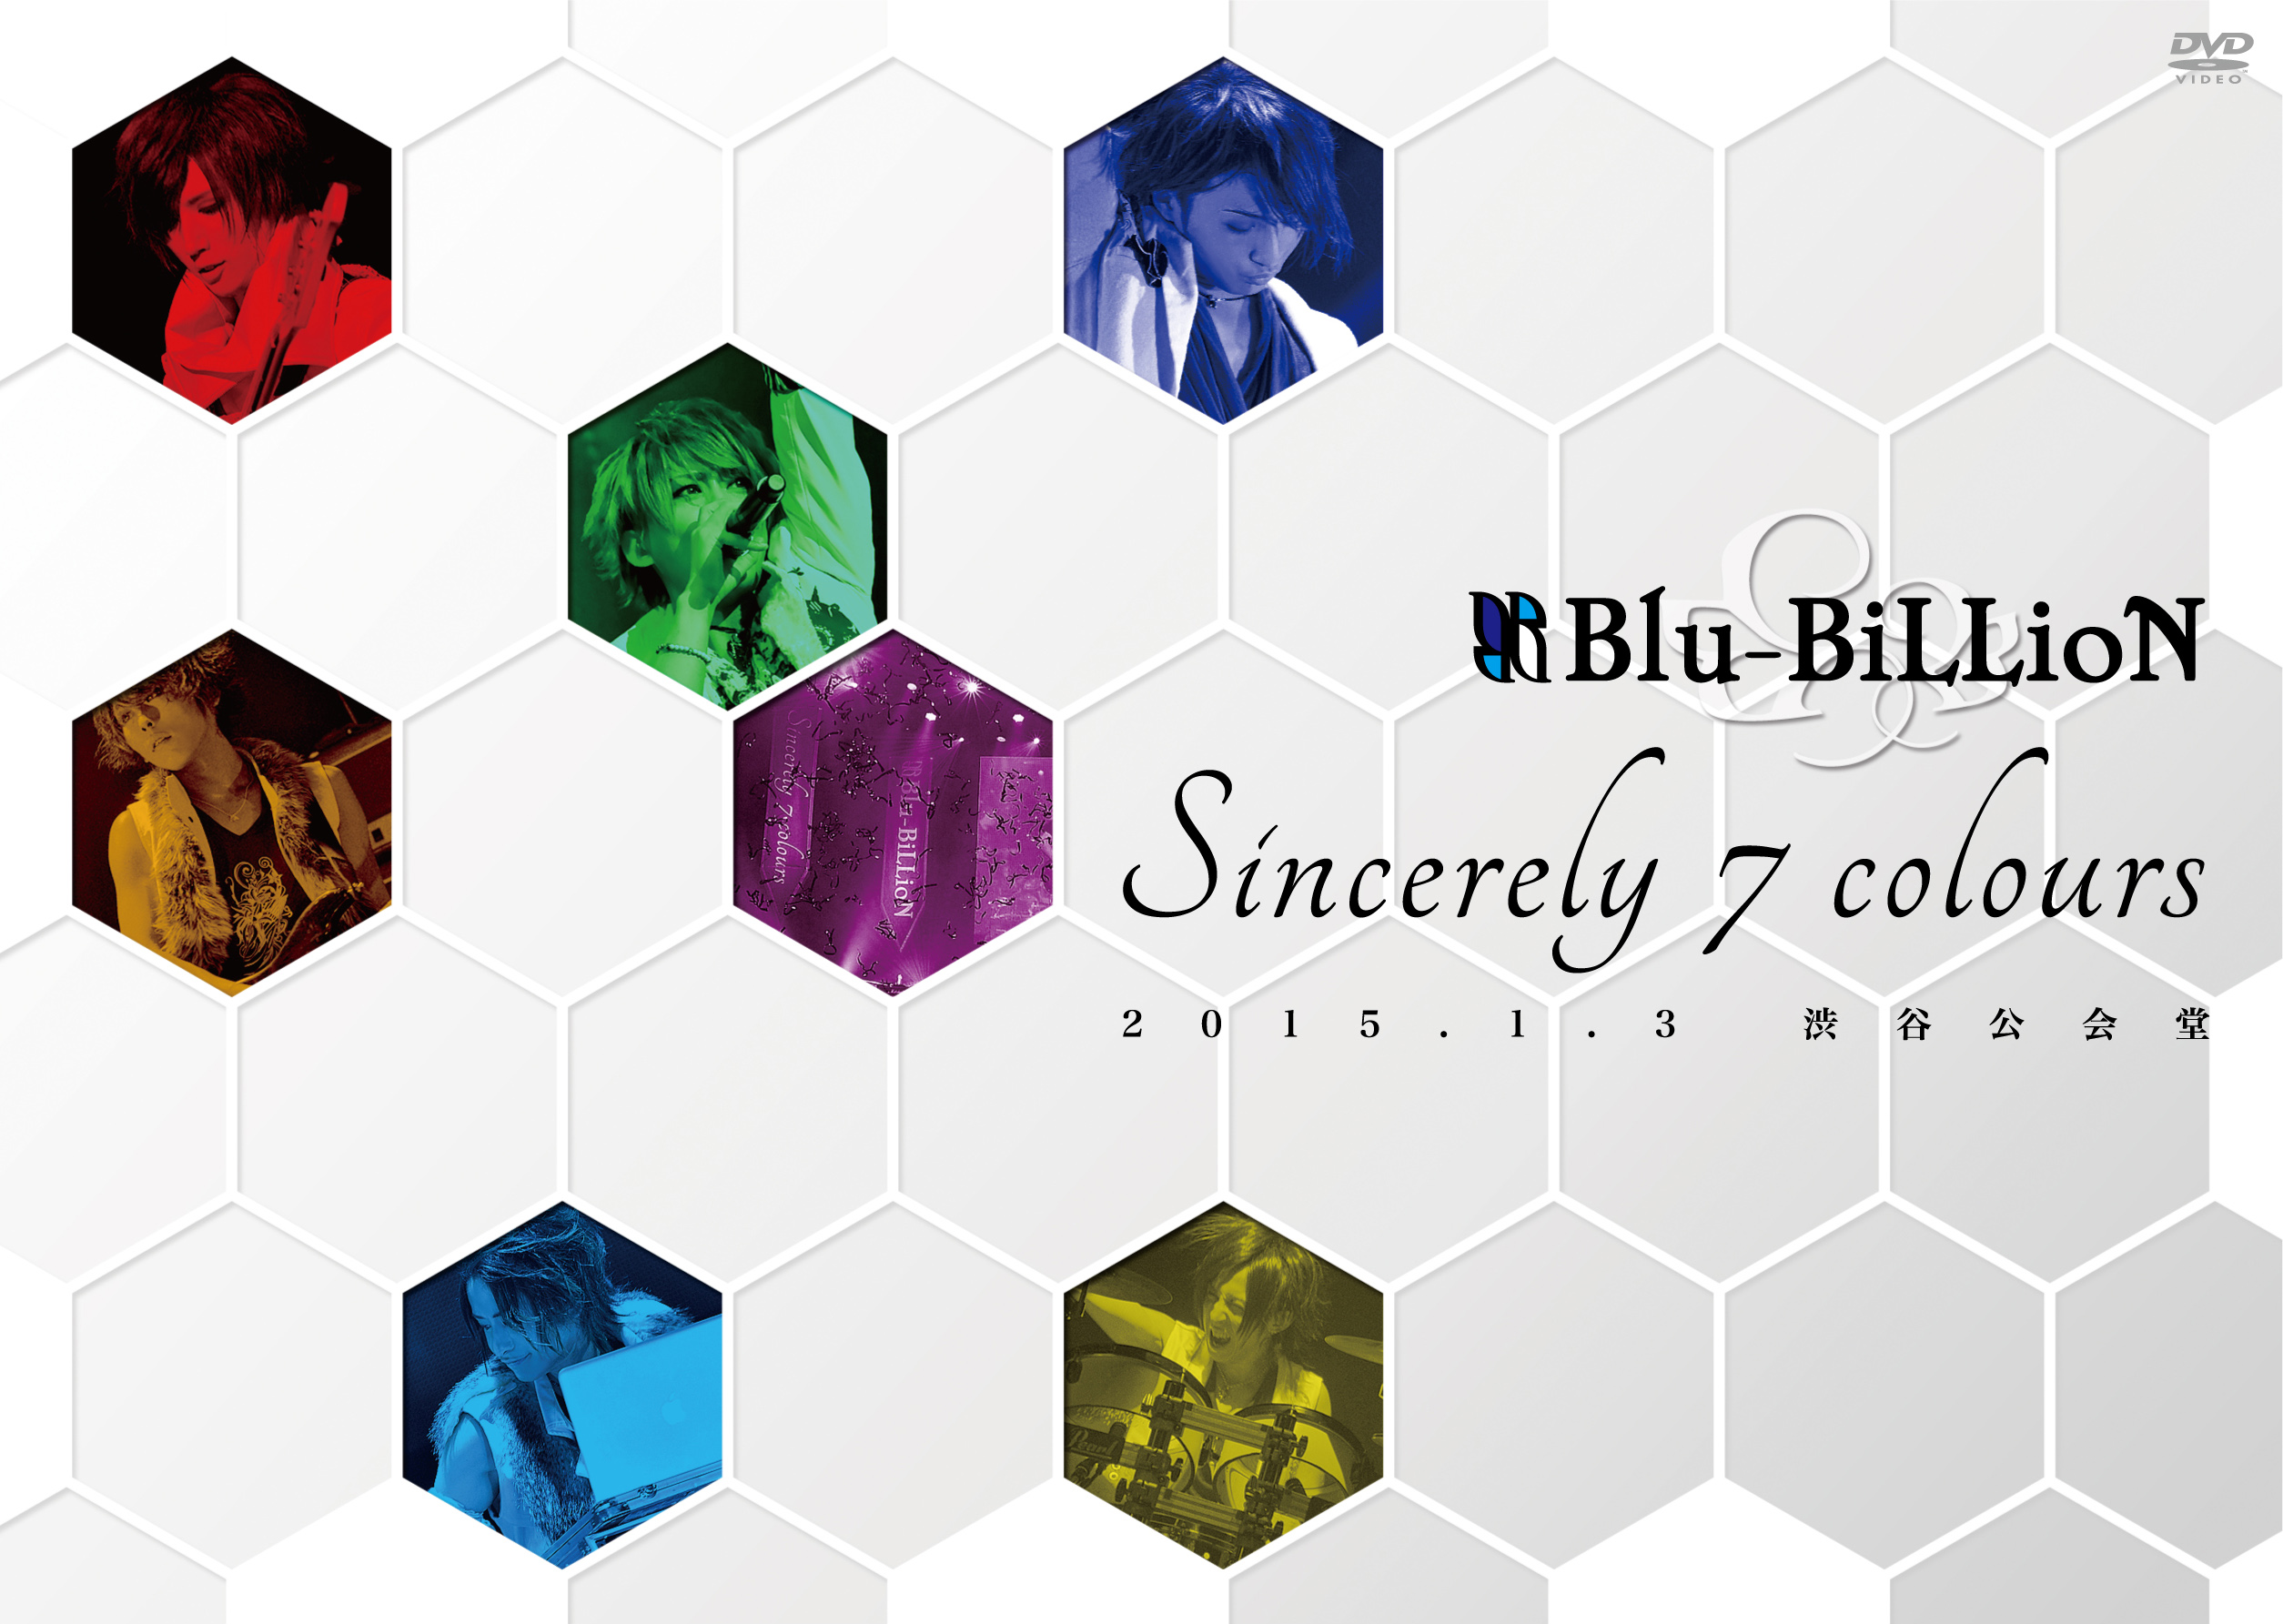 「Sincerely 7 colours」2015.1.3 渋谷公会堂